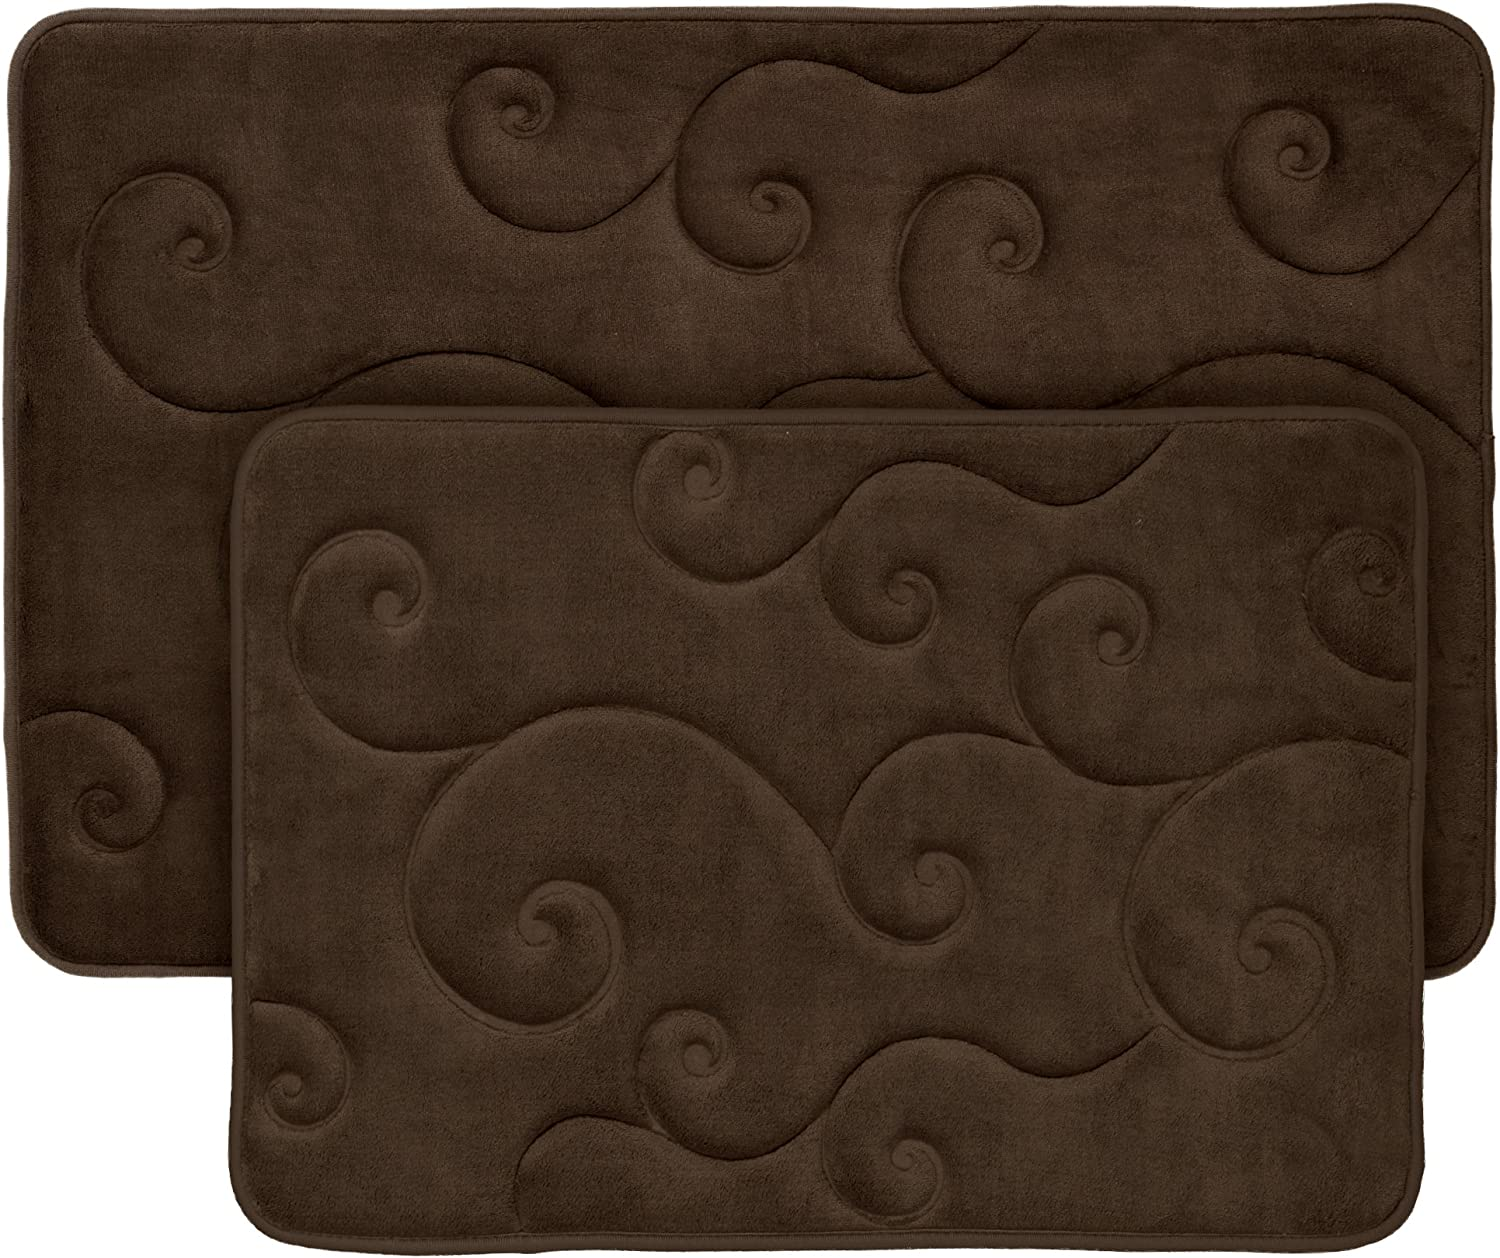 2 pc Memory Foam Bath Mat Set by Lavish Home - Coral Fleece Embossed Pattern - Chocolate